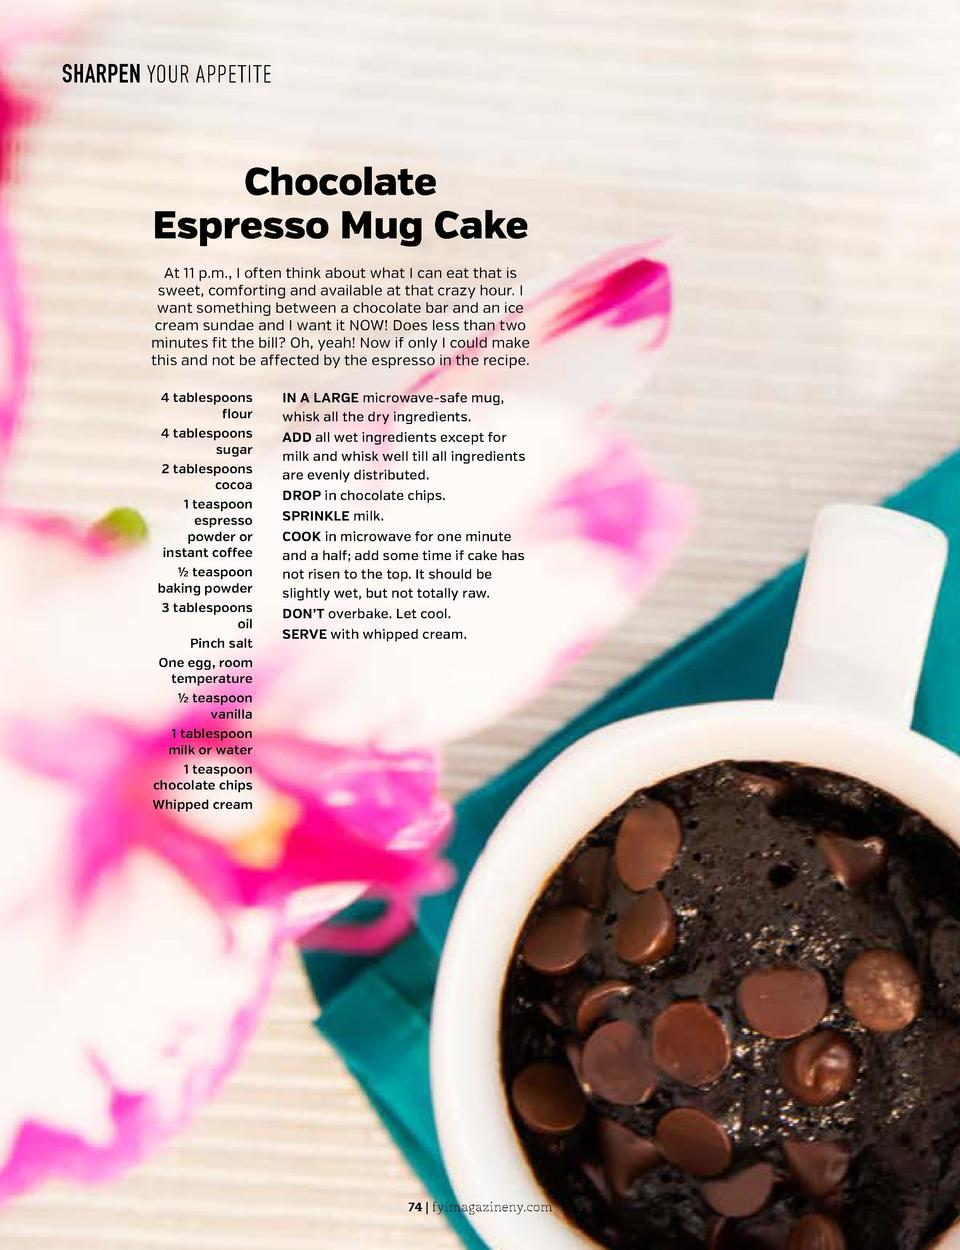 SHARPEN YOUR APPETITE  SHARPEN YOUR APPETITE  Chocolate Espresso Mug Cake At 11 p.m., I often think about what I can eat t...